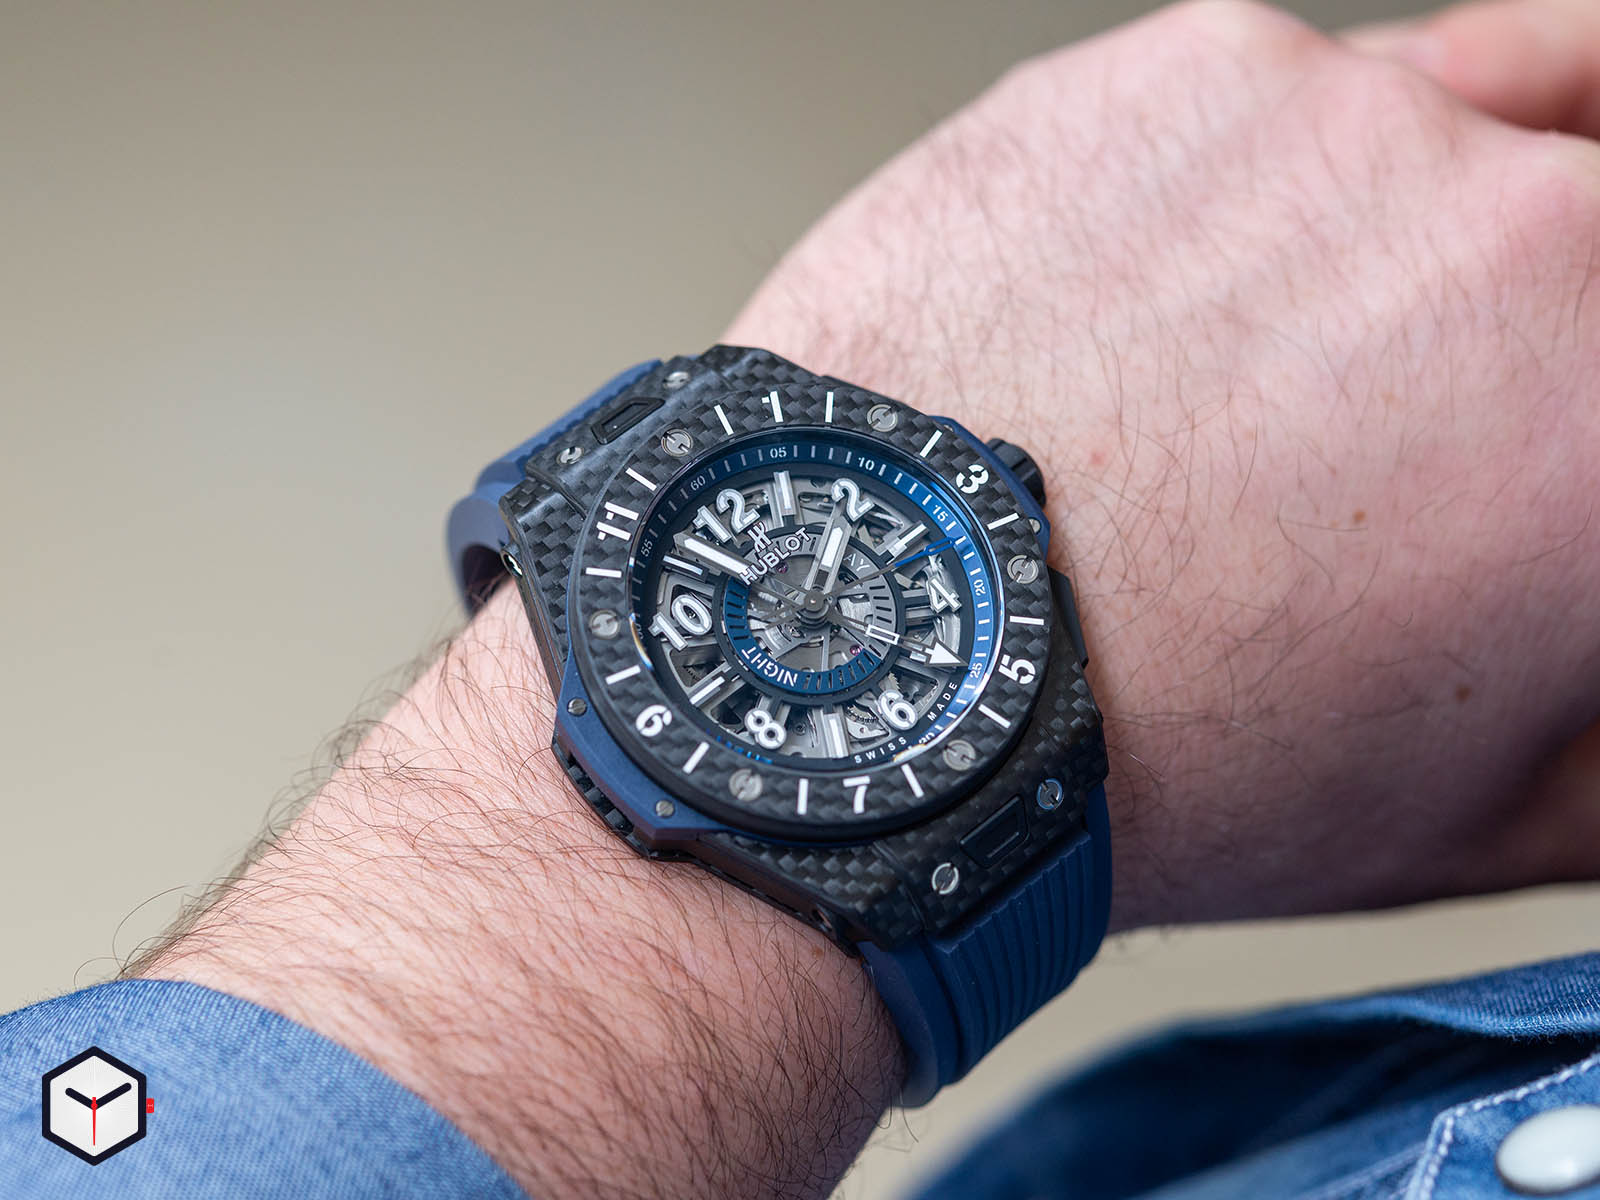 471-qx-7127-rx-hublot-big-bang-unico-gmt-carbon-8.jpg